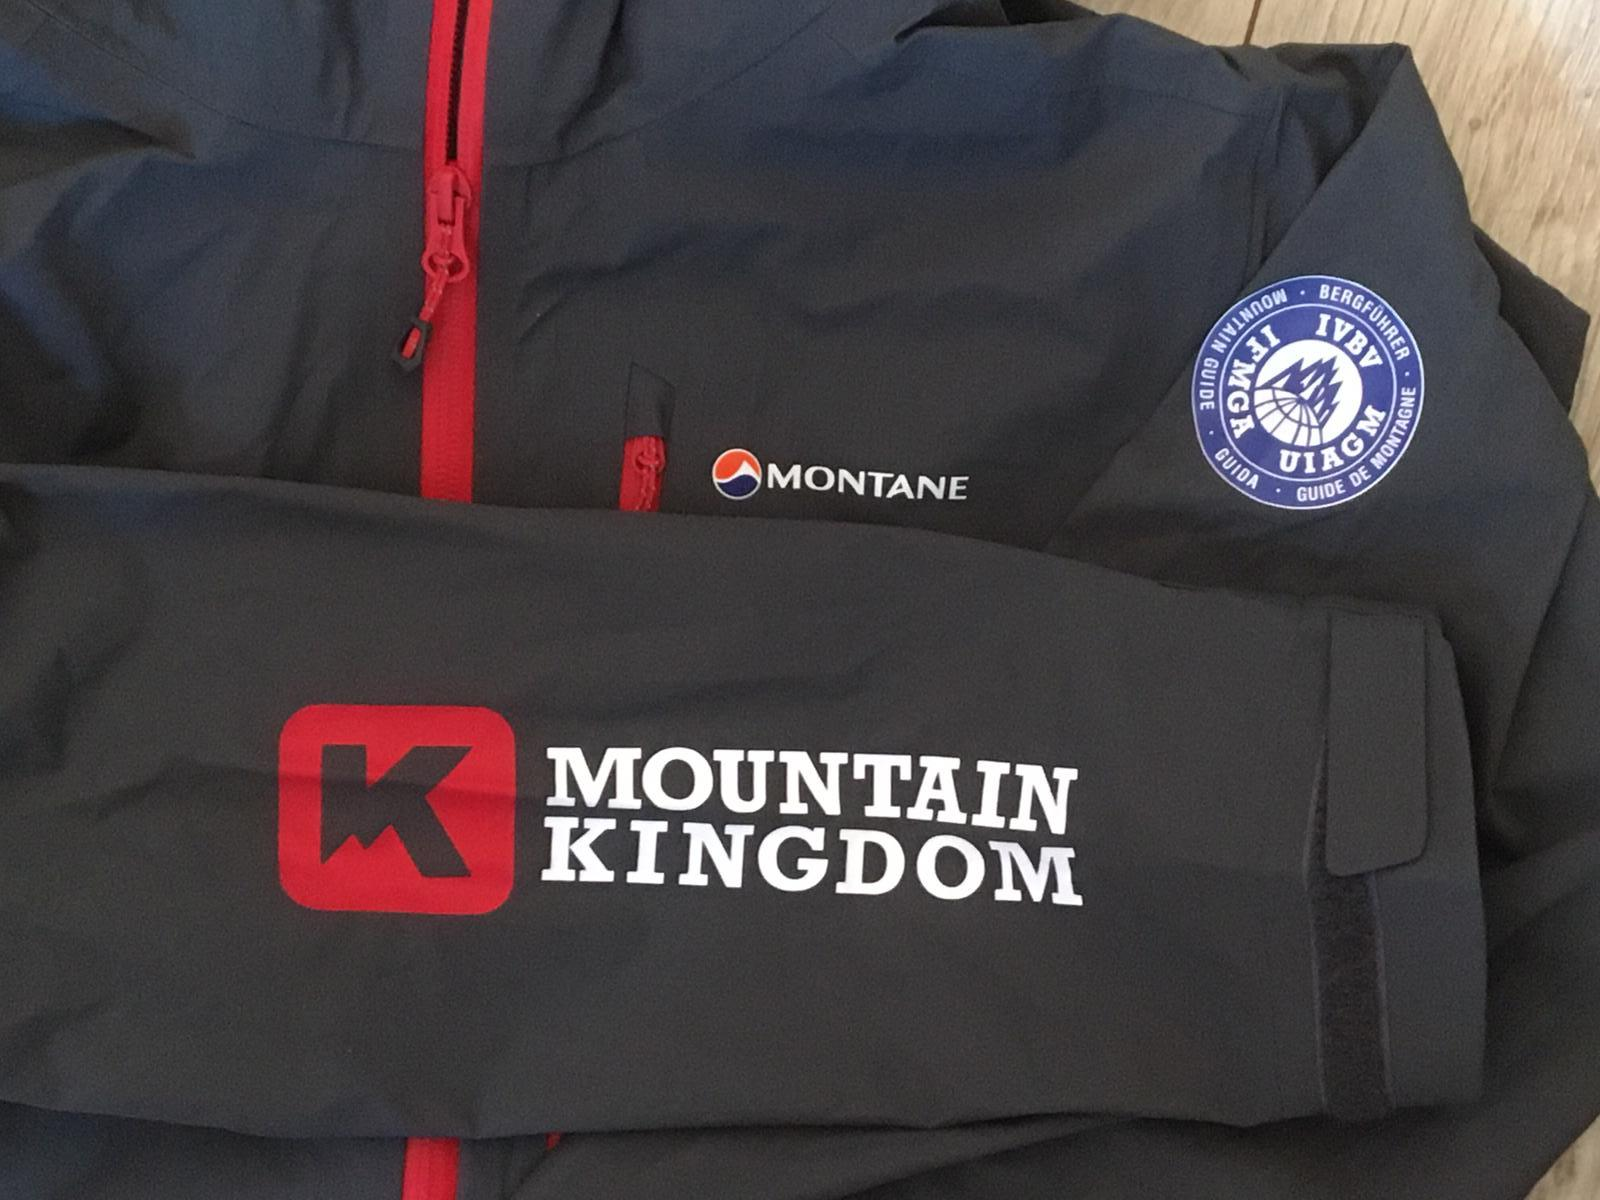 Montane: Il nuovo supporter per Mountain Kingdom